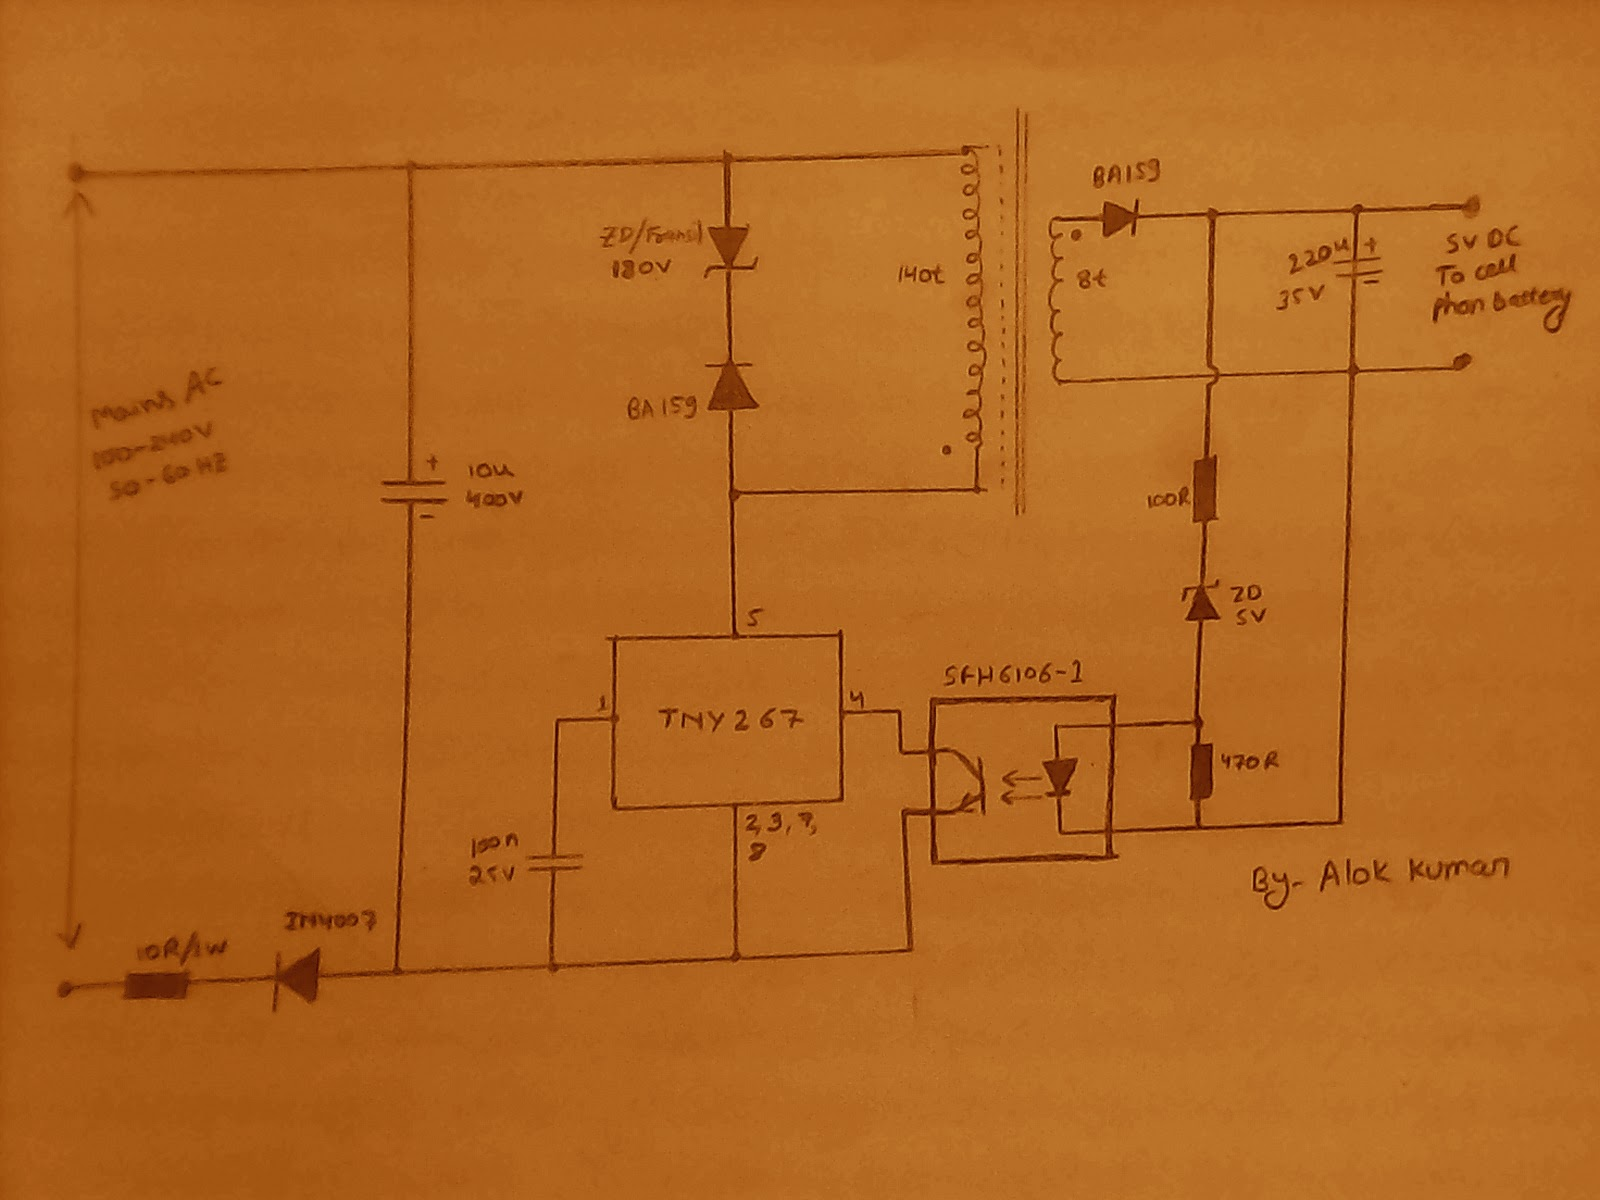 electronic circuits transformerless power supply led drivers circuit diagram the mains input which can be anywhere between 100v and 280v ac is half wave rectified and filtered through shown 1n4007 diode and 10uf 400v